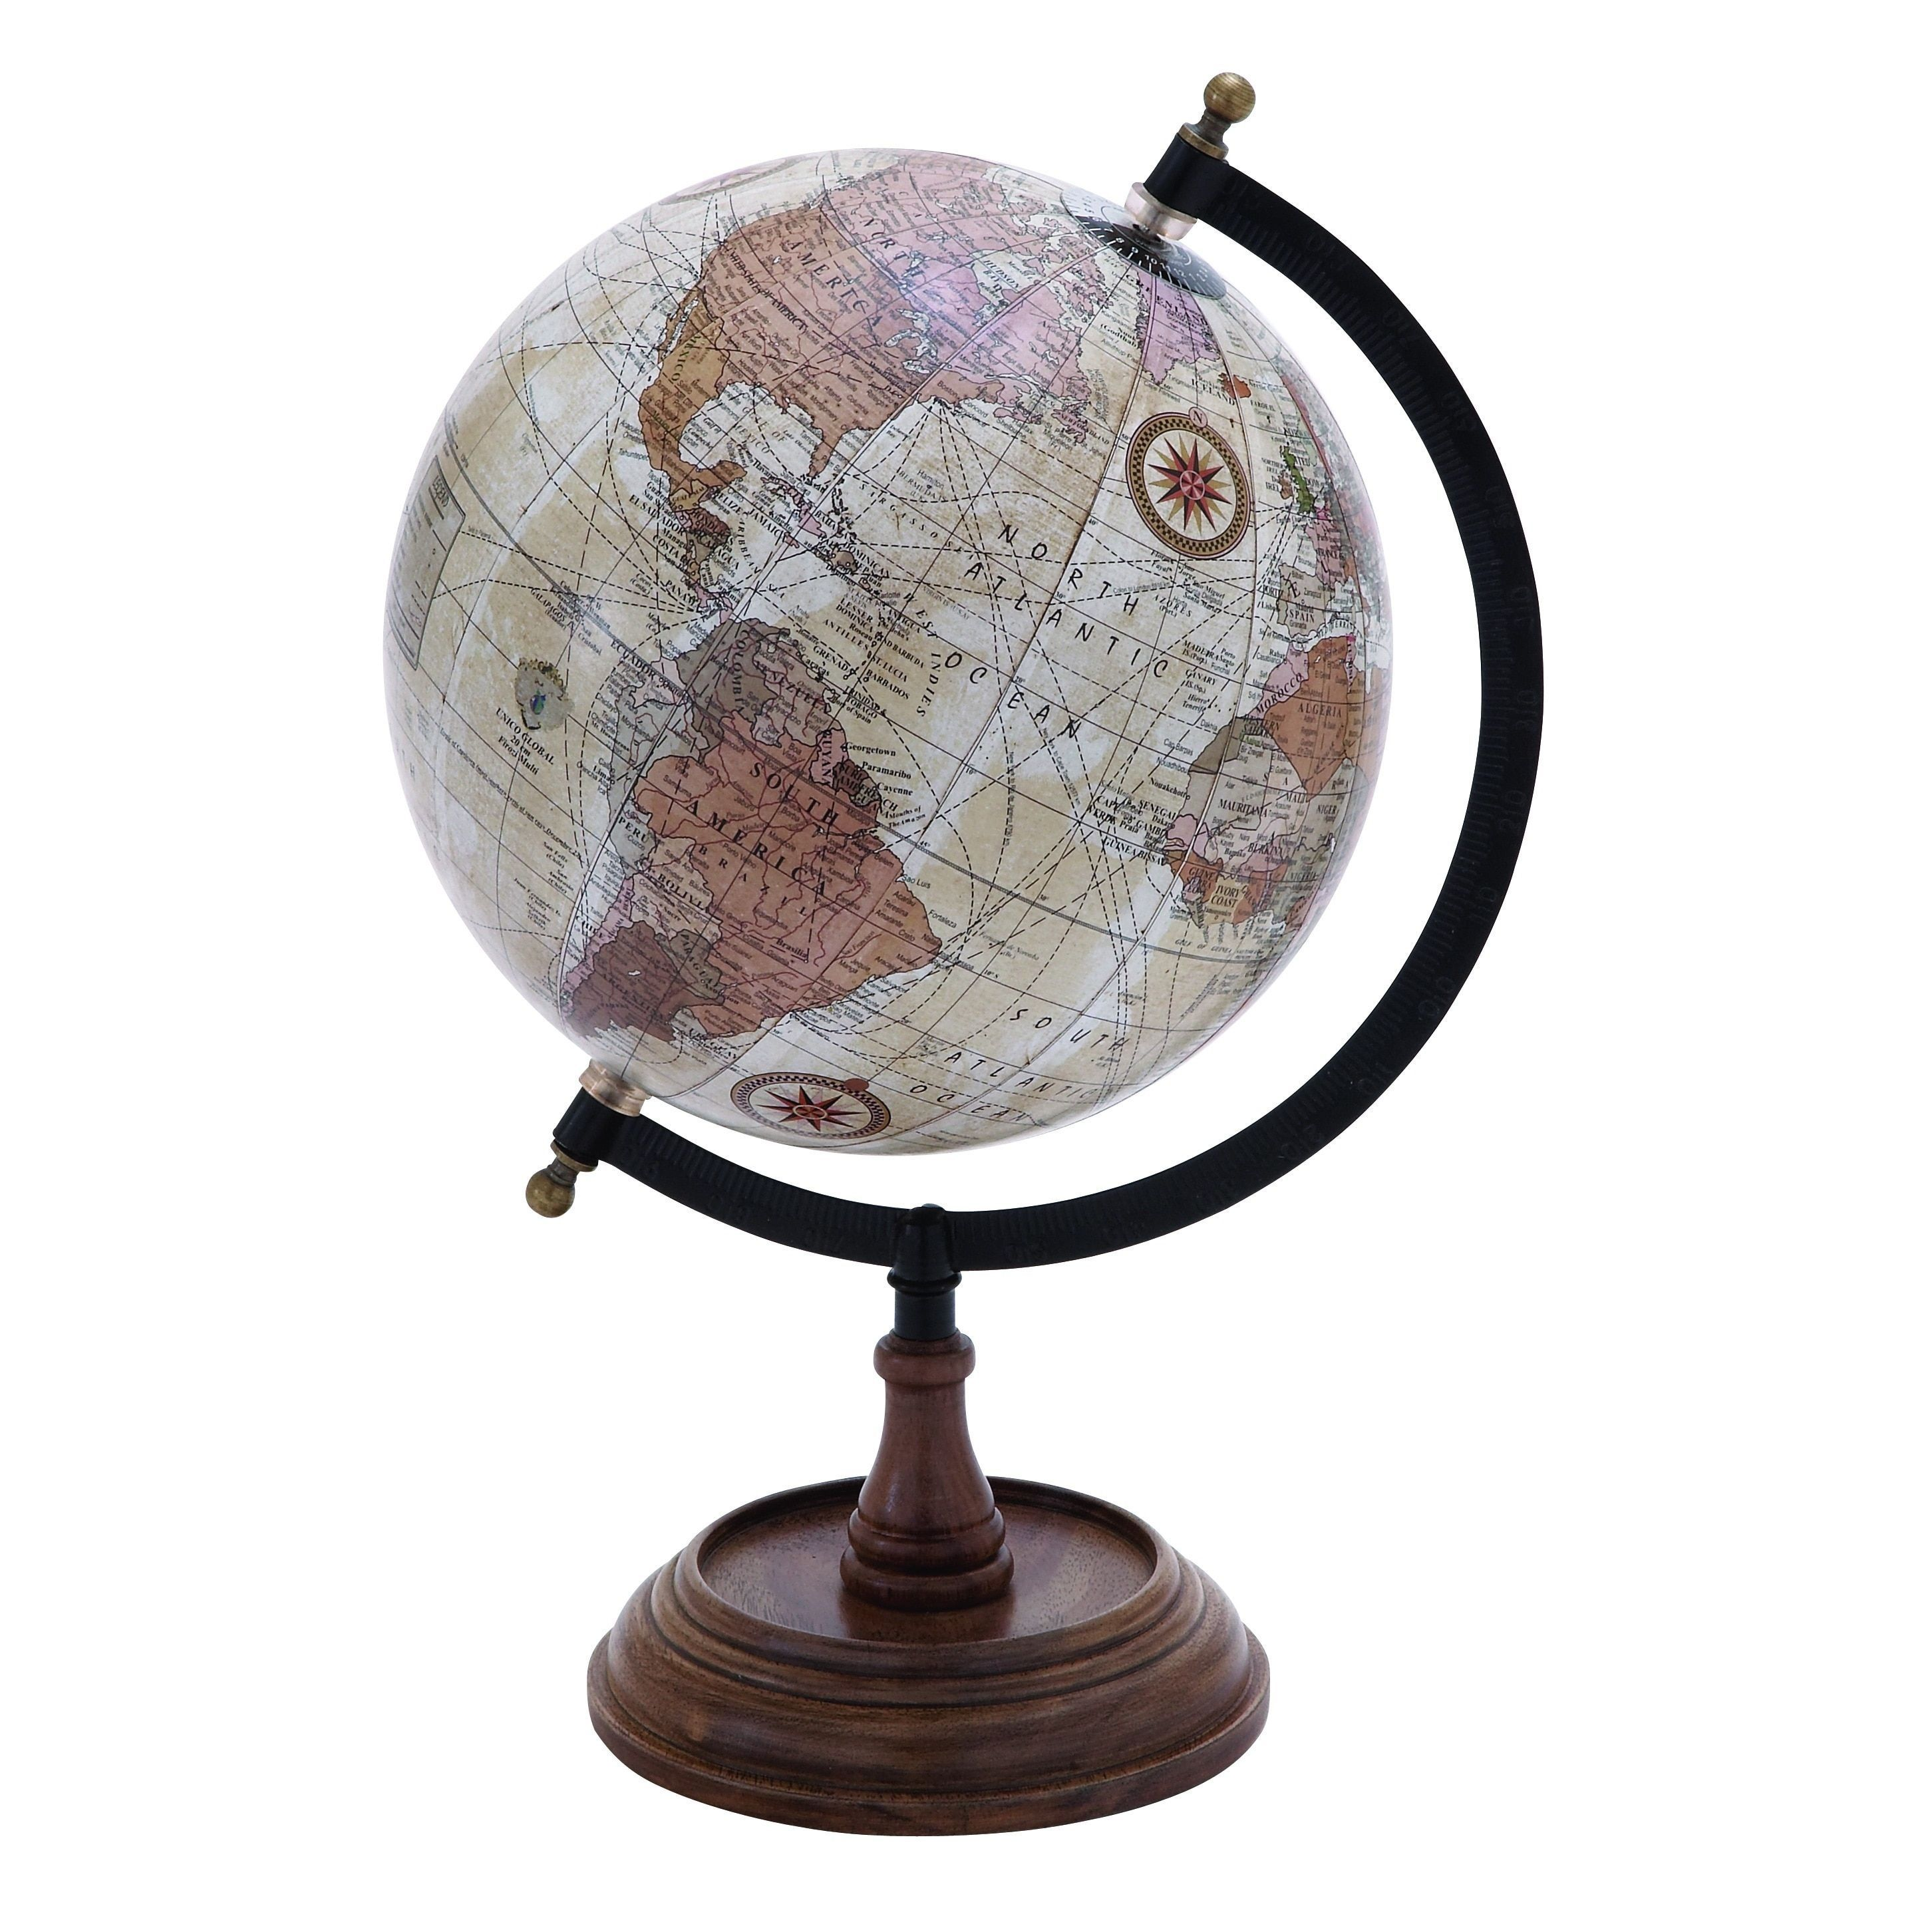 bad3aac3998df0e98db19bf79b17c374 - Better Homes And Gardens Decorative Tabletop Globe